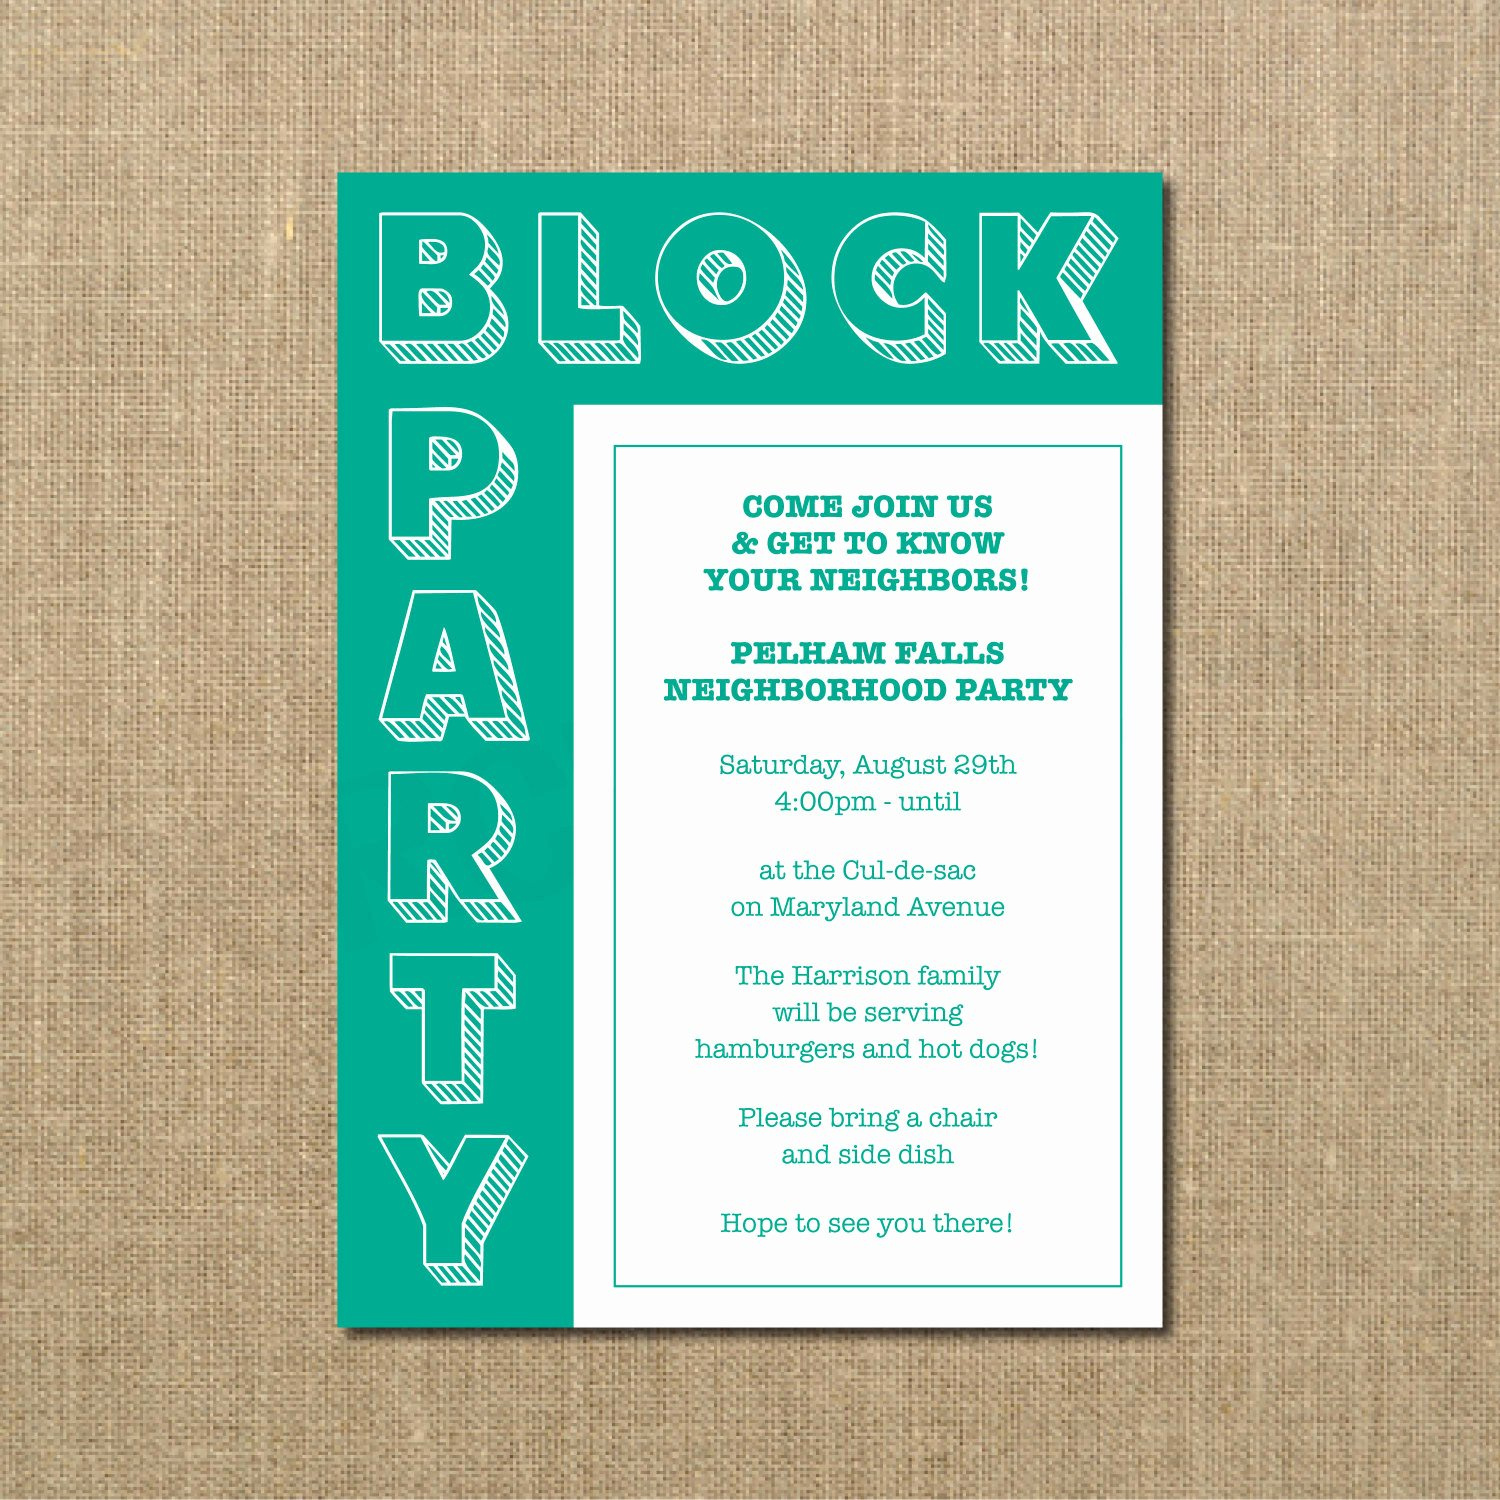 Block Party Flyer Template Elegant Neighborhood Block Party Cookout Invitation Grilling Out